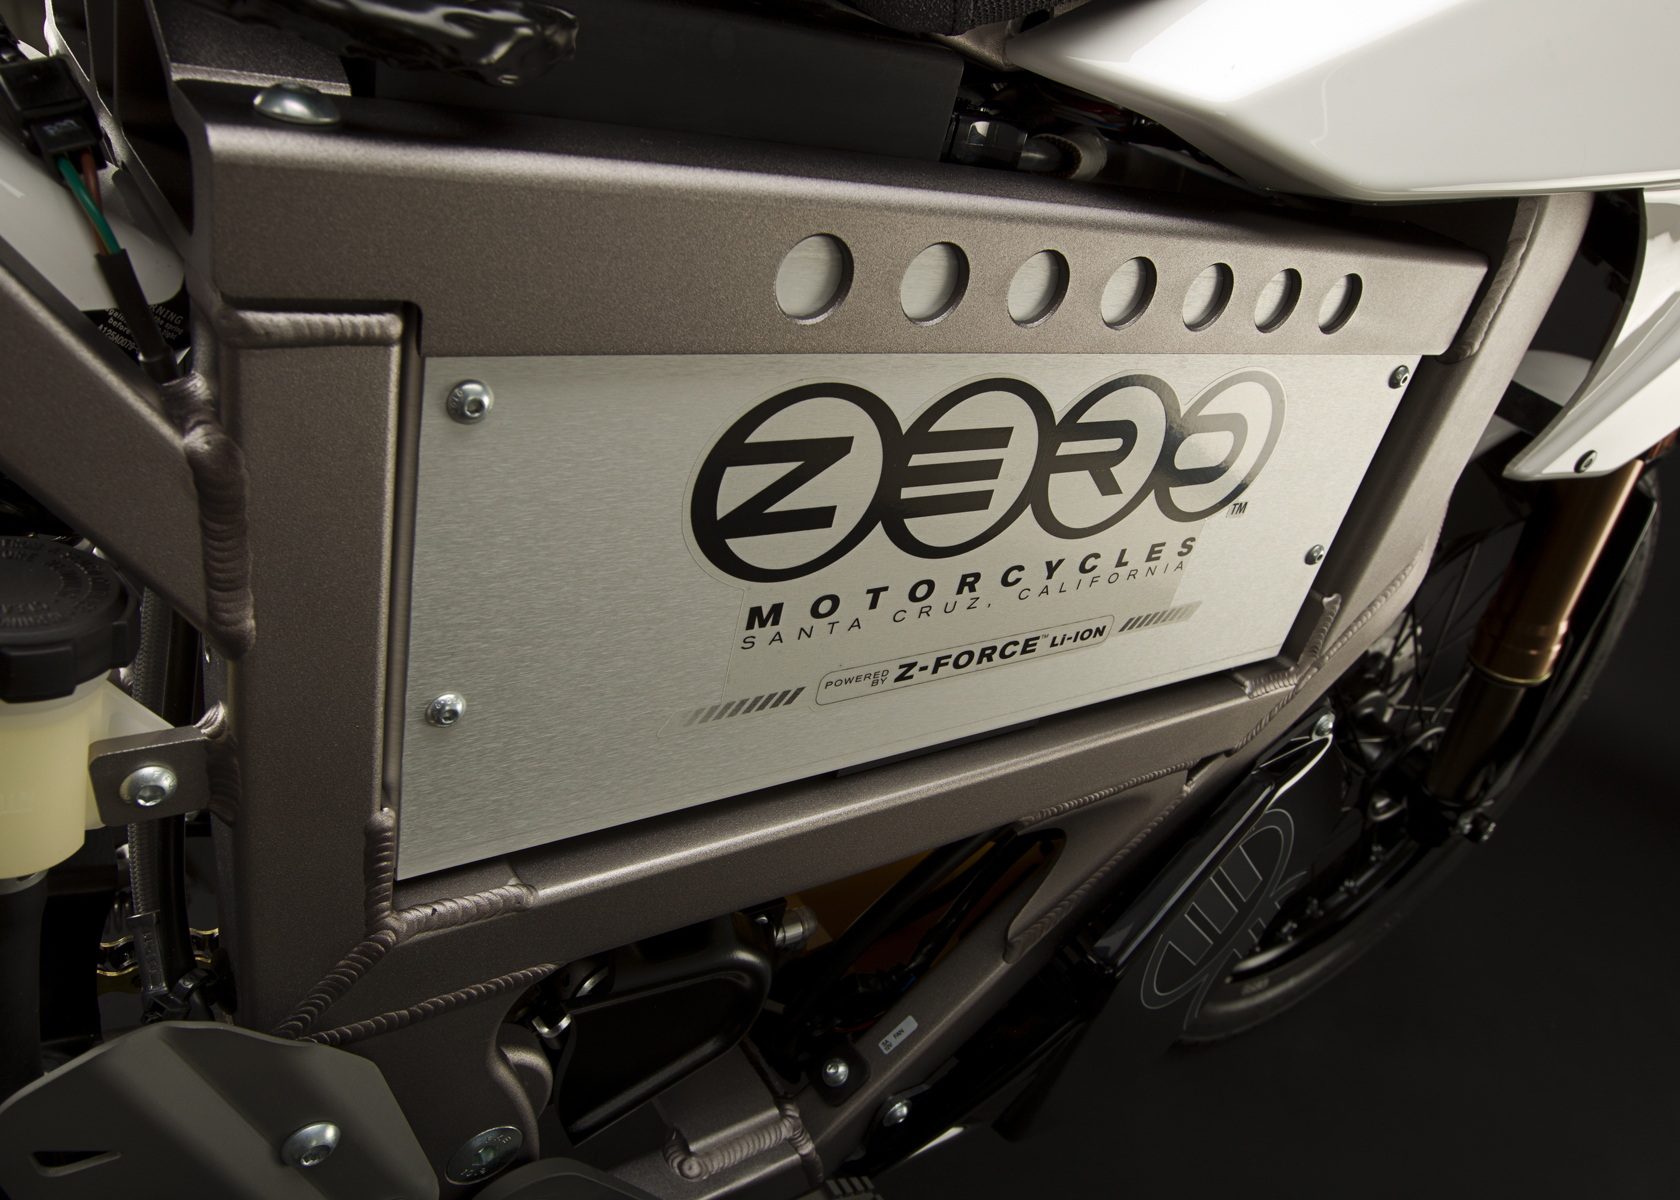 2011 Zero XU Electric Motorcycle: Battery